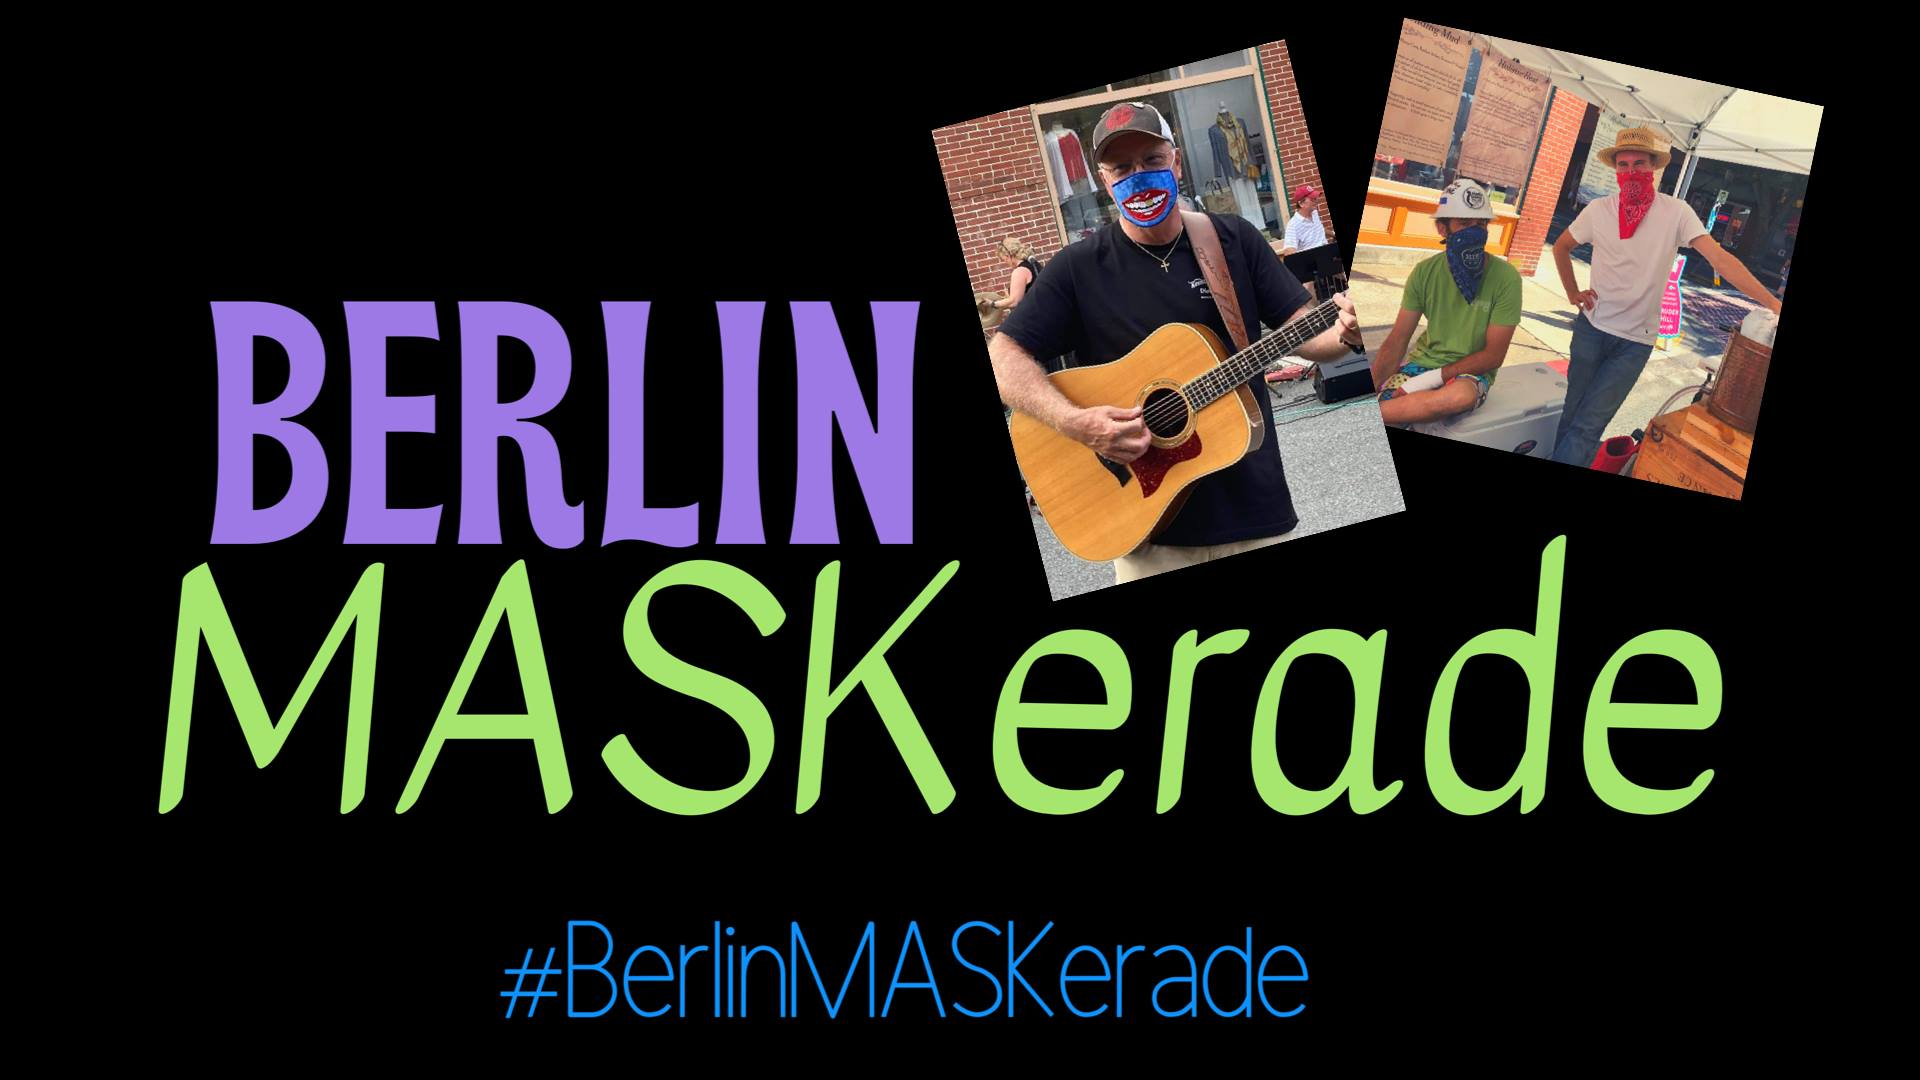 Berlin Offering Social Media MASKerade Campaign